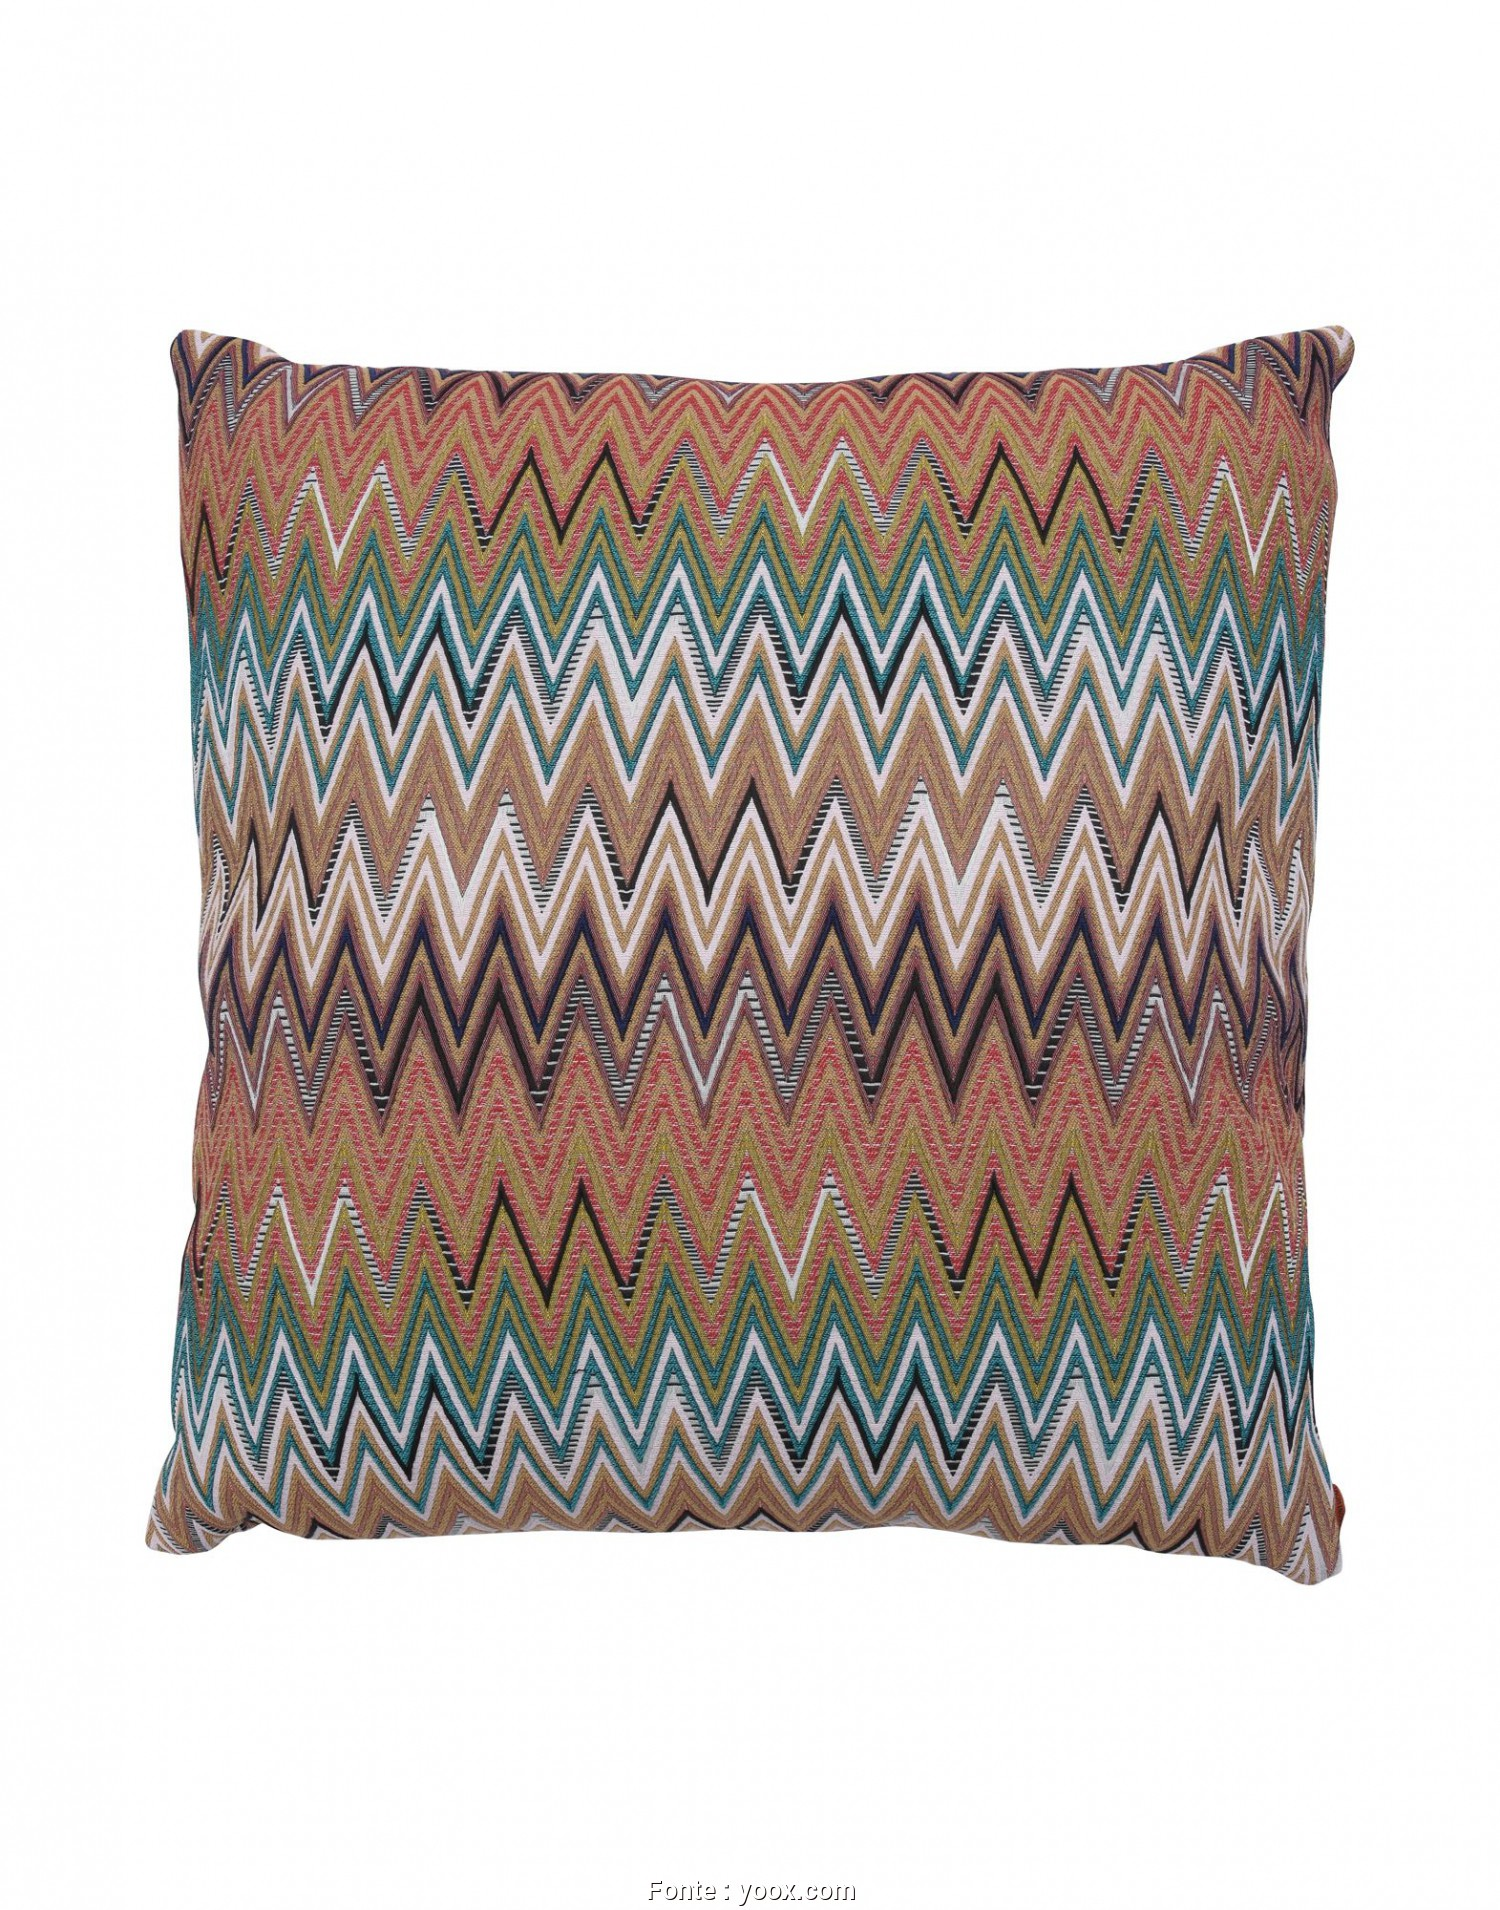 Cuscini Decorativi Economici, Loveable Cuscini By Missoni Home, Vendita Home Interior Design Online Su YOOX